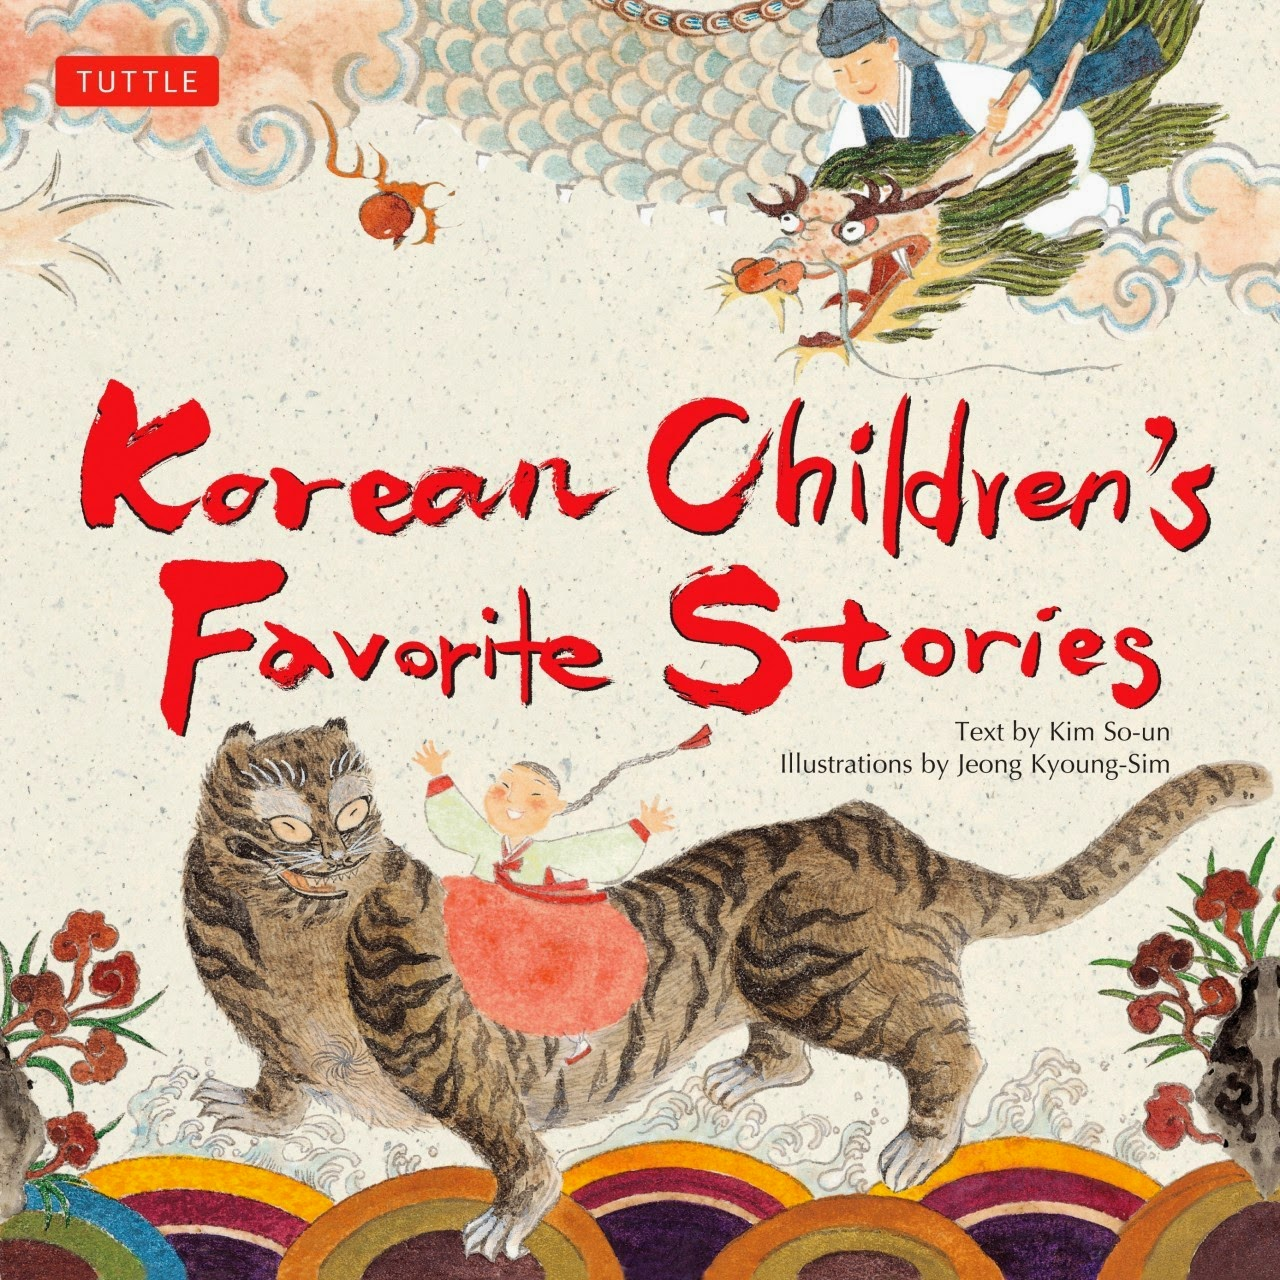 http://www.tuttlepublishing.com/books-by-country/korean-childrens-favorite-stories-hardcover-with-jacket